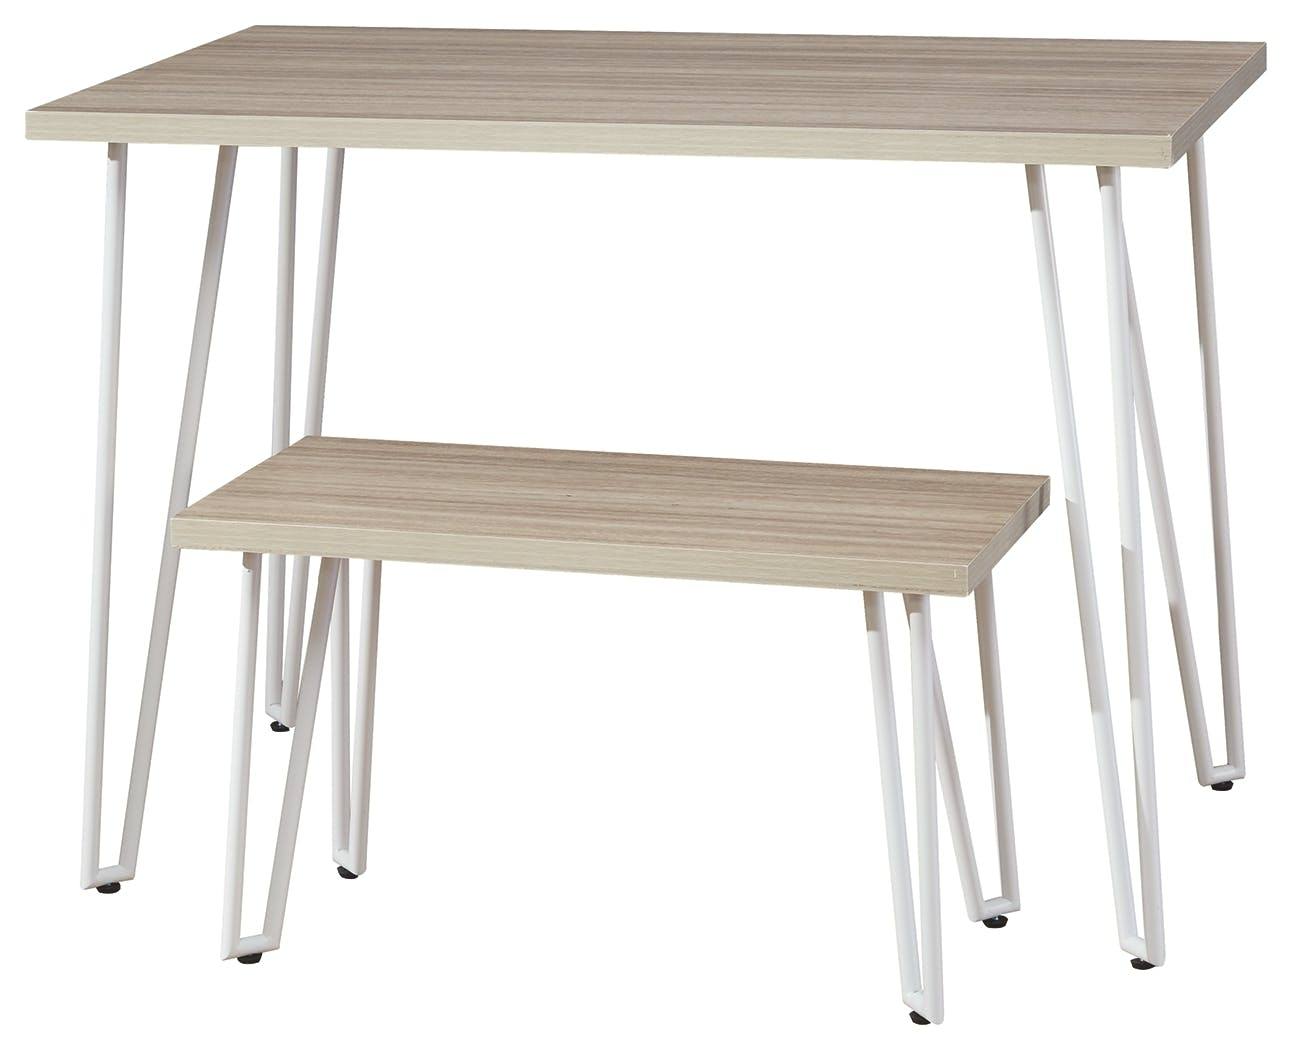 Image of: Signature Design By Ashley Living Room Blariden Desk With Bench B008 201 T H Perkins Furniture